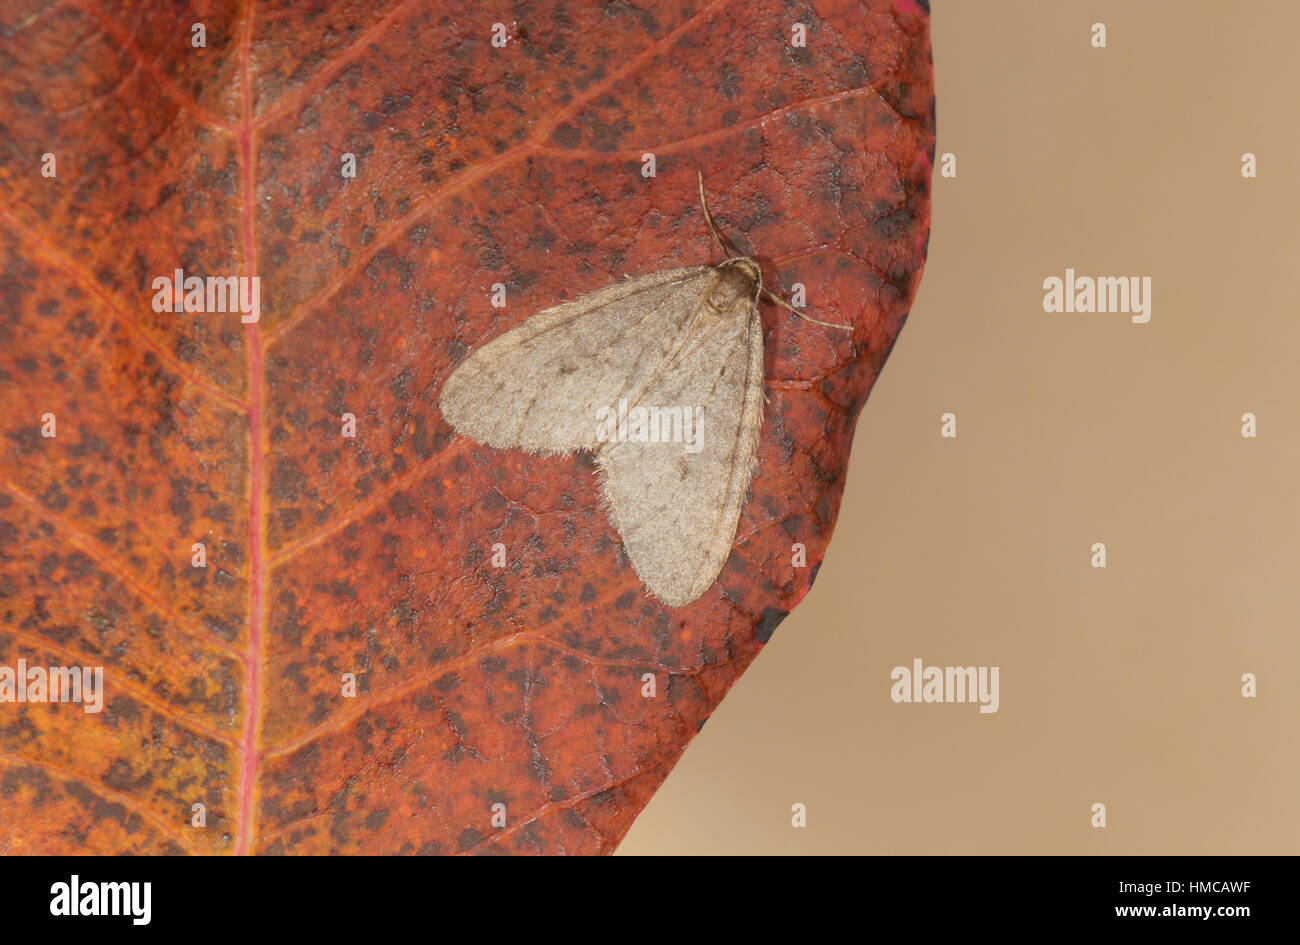 Winter Moth (Operophtera brumata), an autumn-flying insect, male perched on a russet leaf - Stock Image